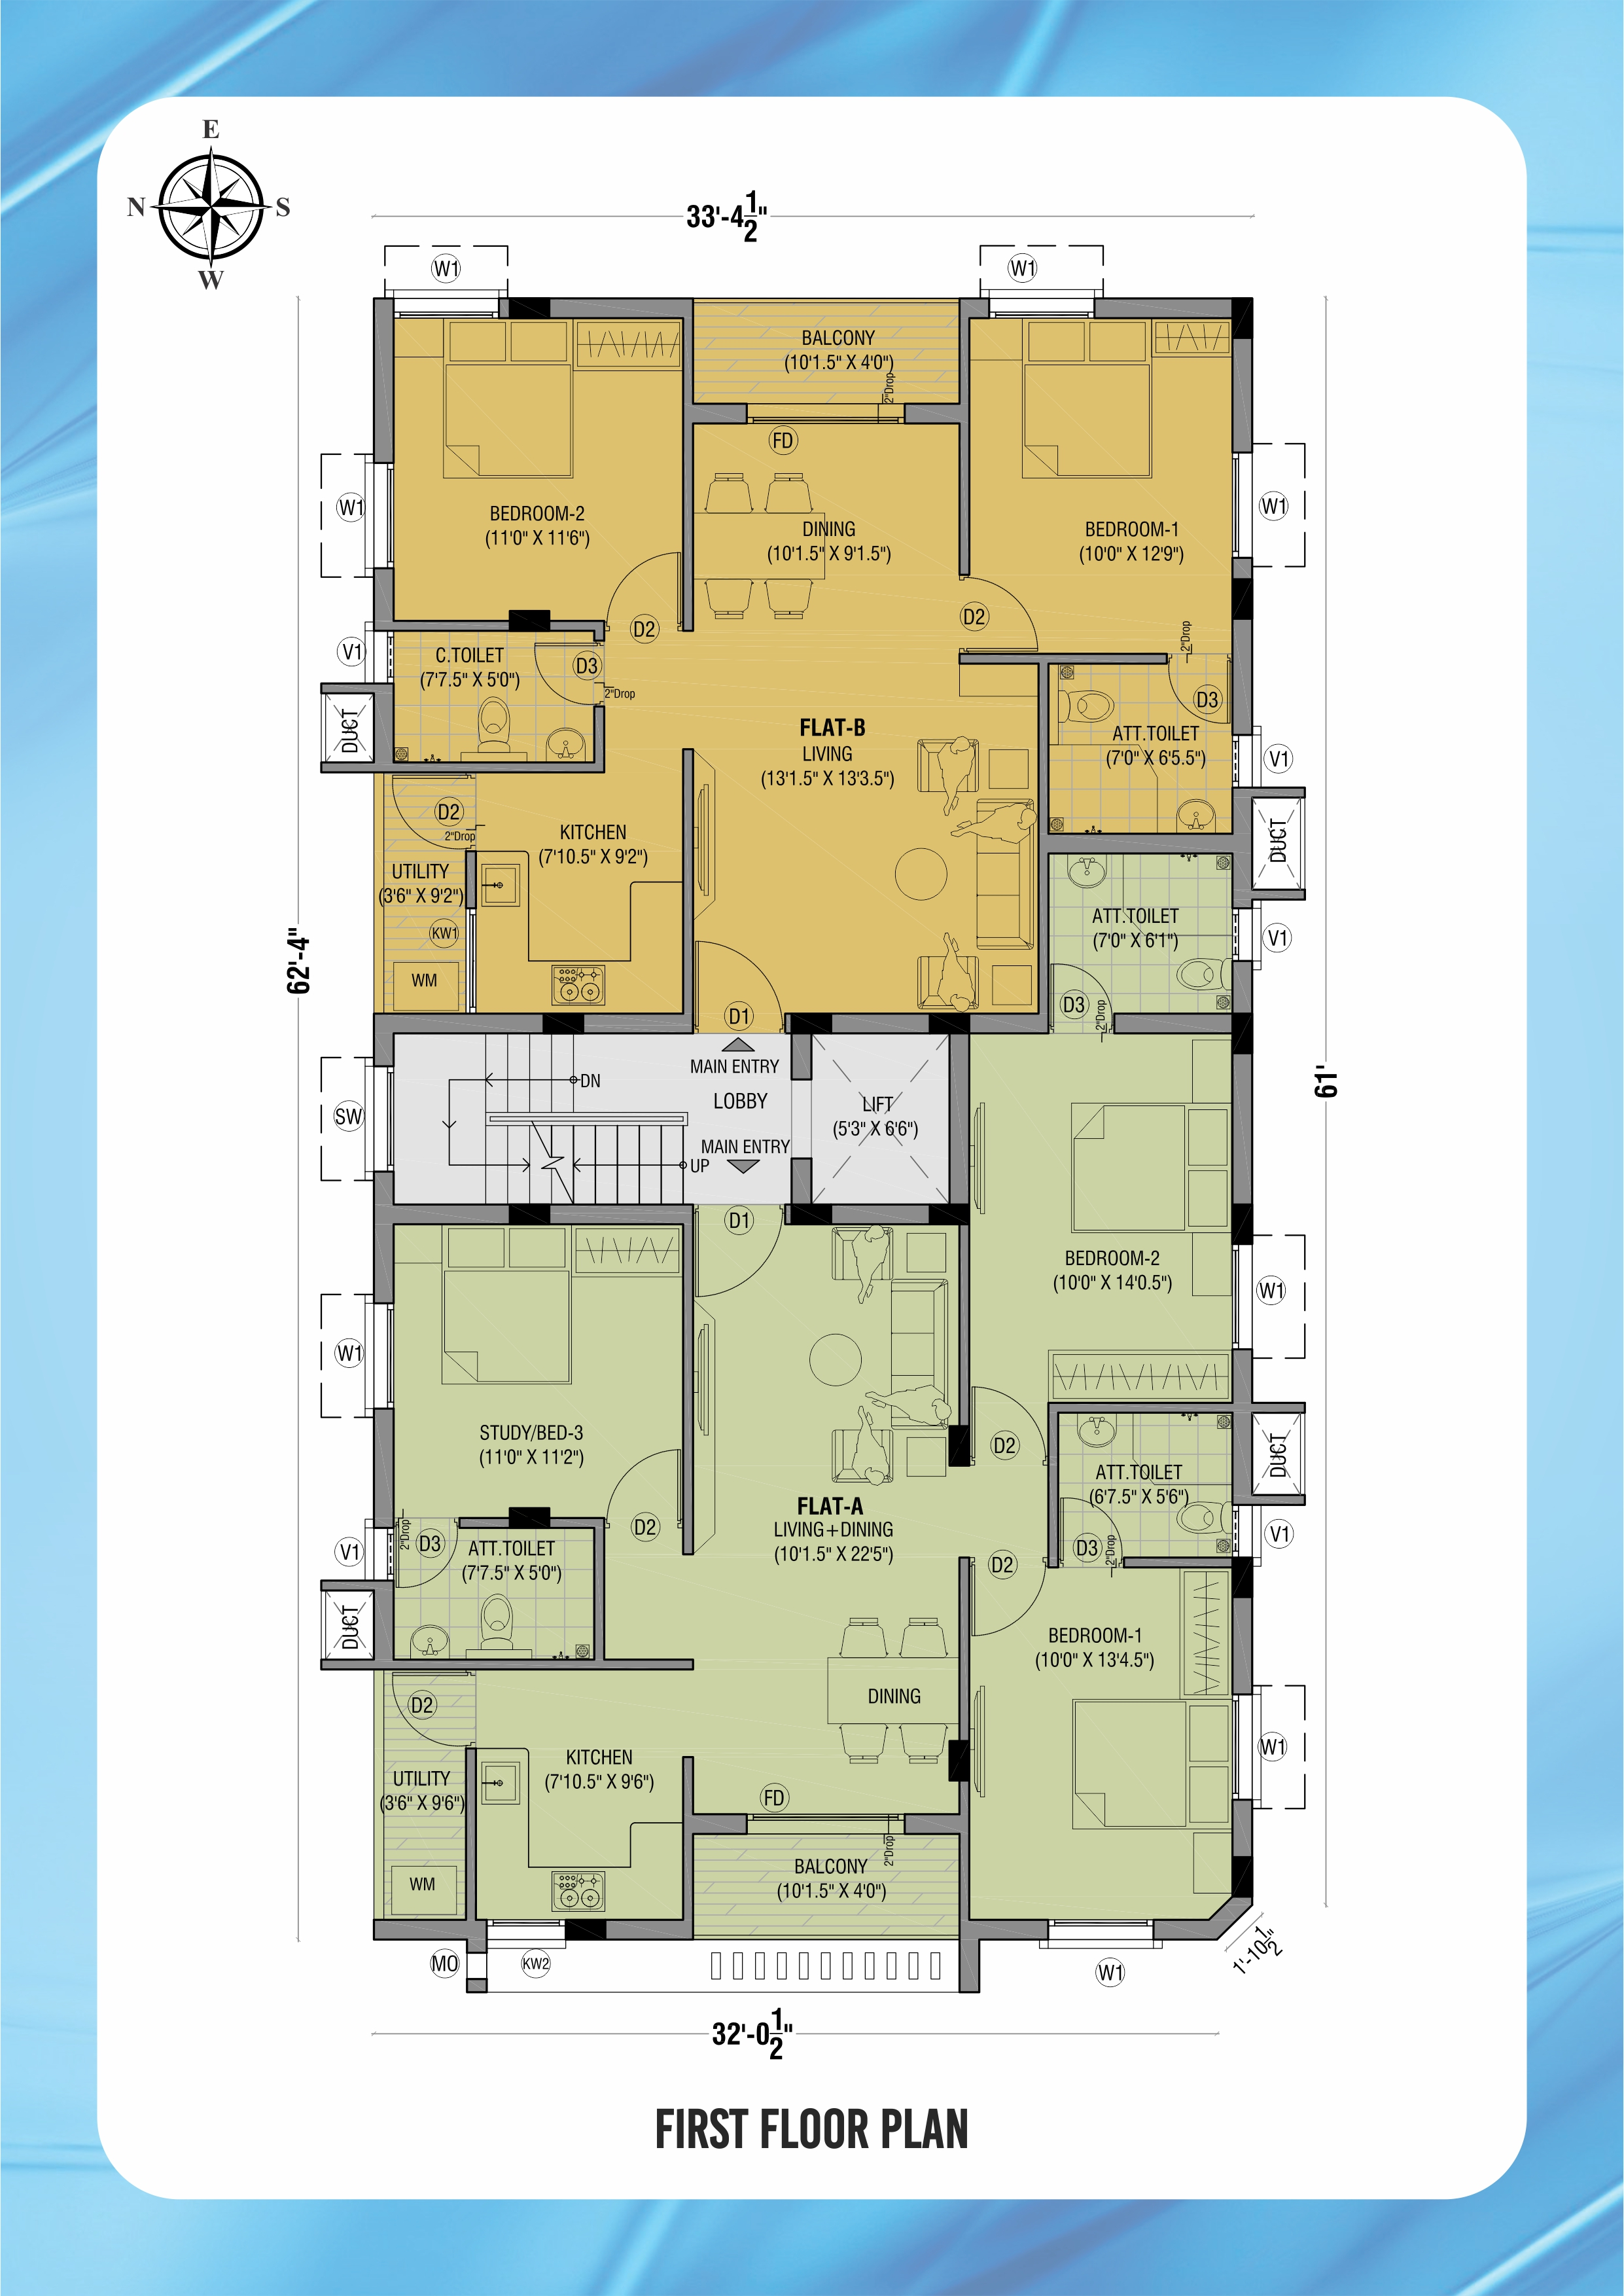 https://firmfoundations.in/projects/floorplans/thumbnails/16062001005Firs.jpg